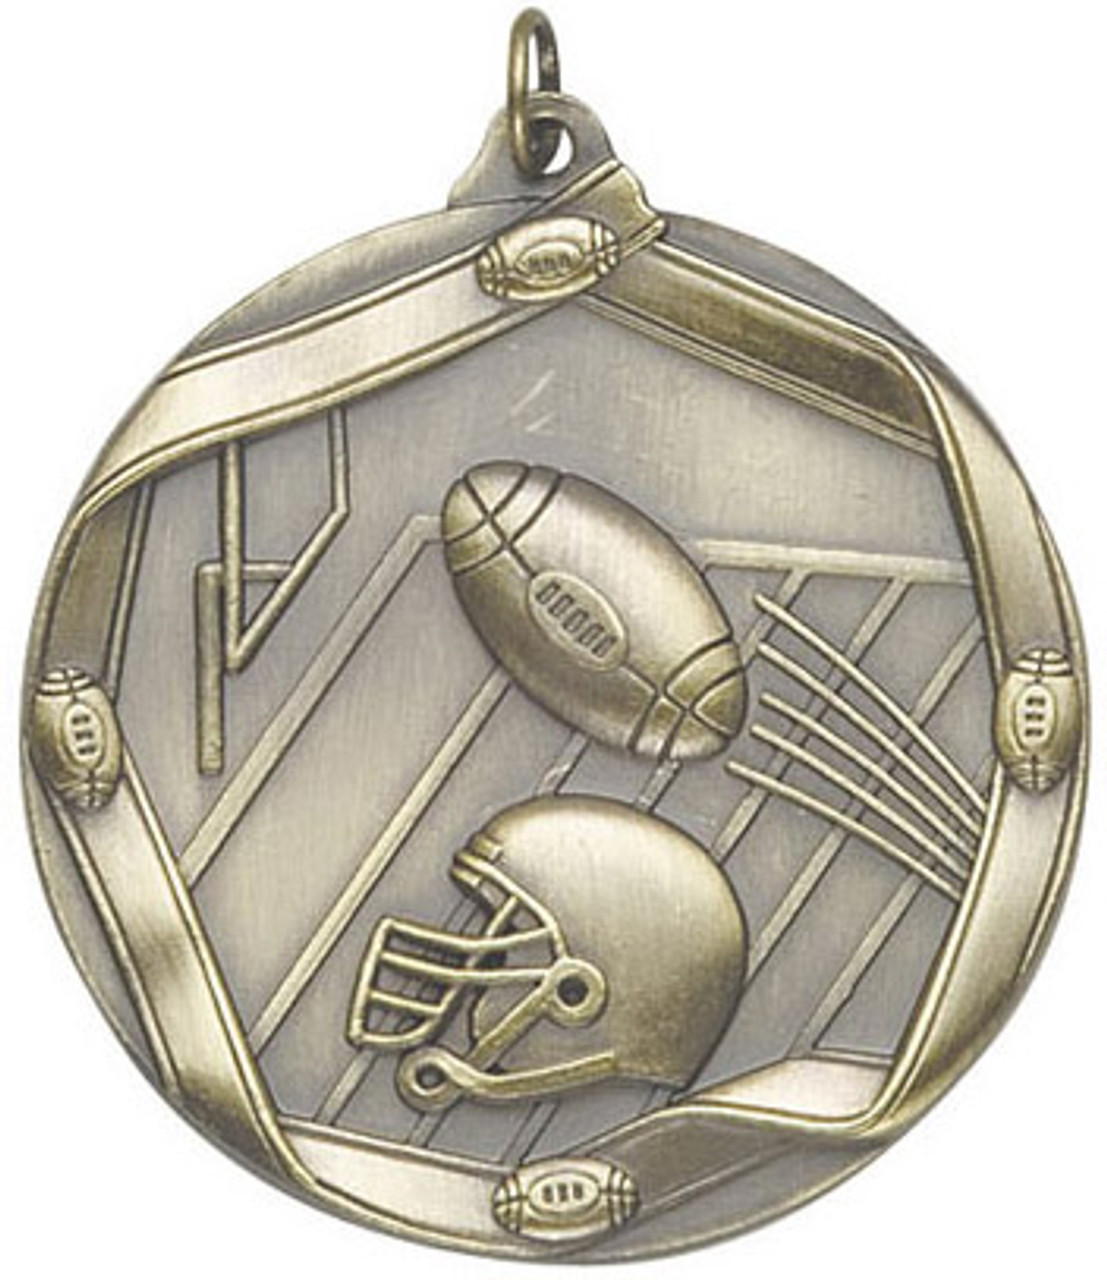 Ribbon Football Medal